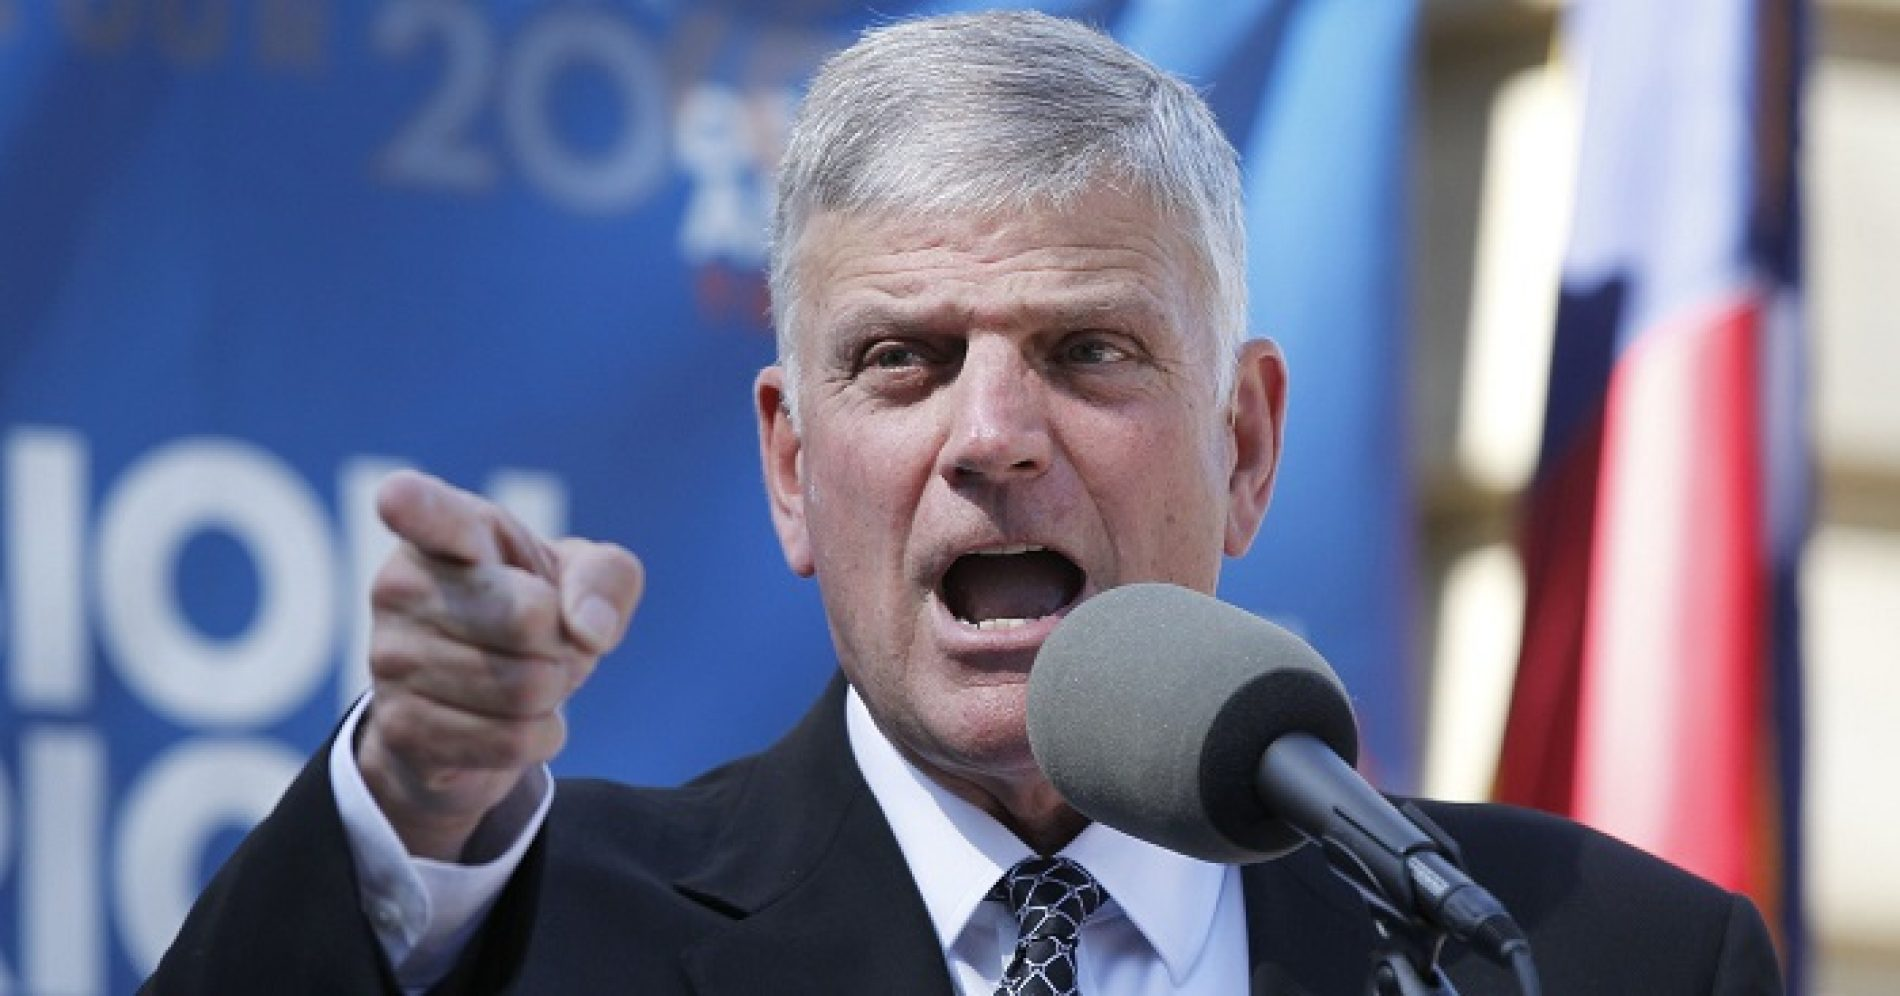 Opinion: Evangelist Franklin Graham distorts the Bible's message on homosexuality